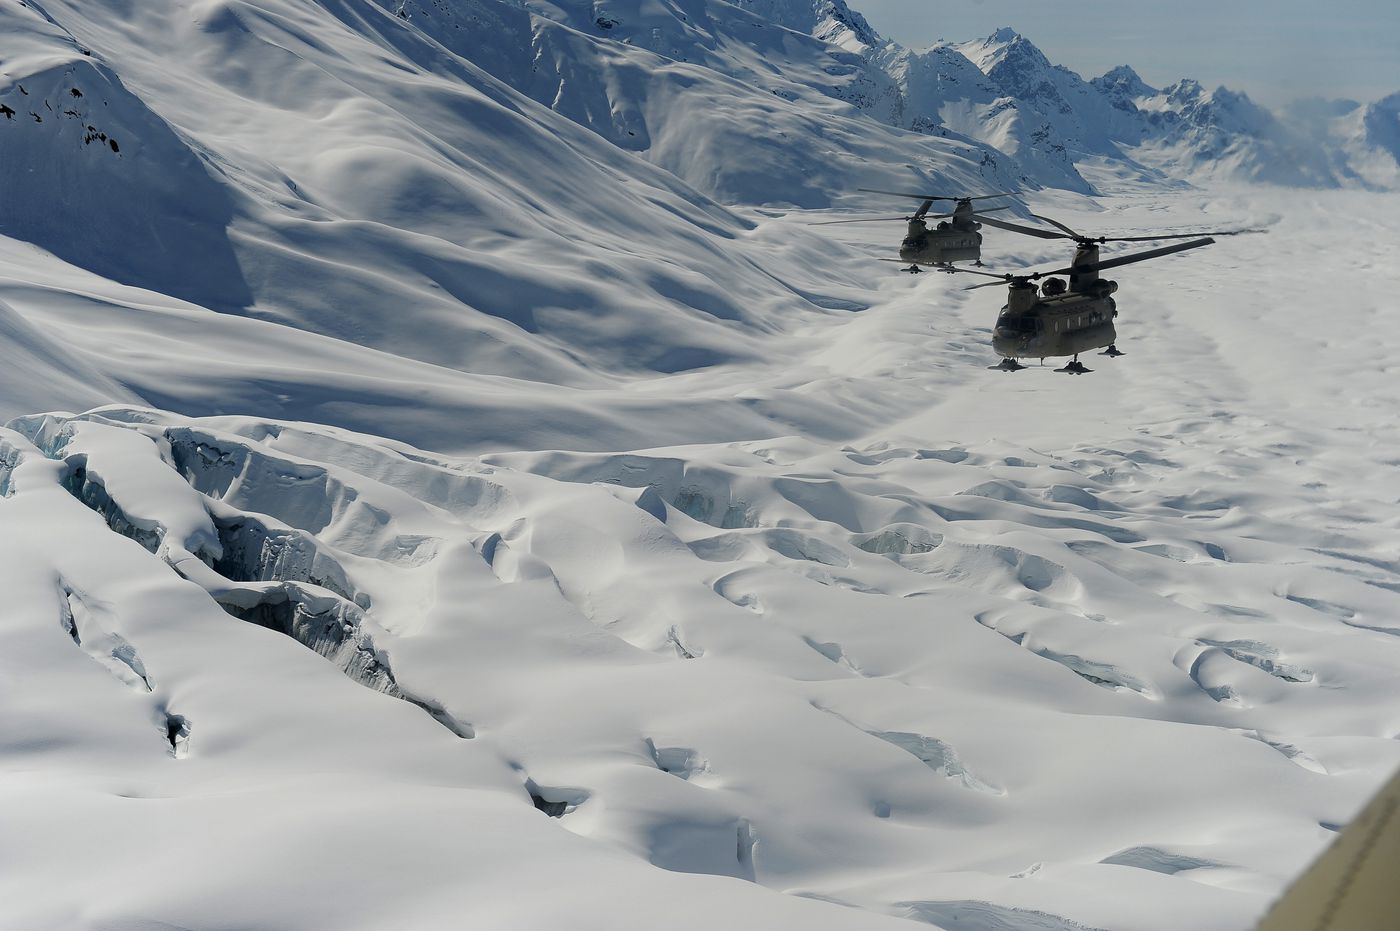 Two Chinook helicopters pass over a crevasse field as Fort Wainwright soldiers haul tents, fuel and food up to Kahiltna Glacier for the National Park Service's Denali mountaineering camp on Sunday, April 24, 2016.